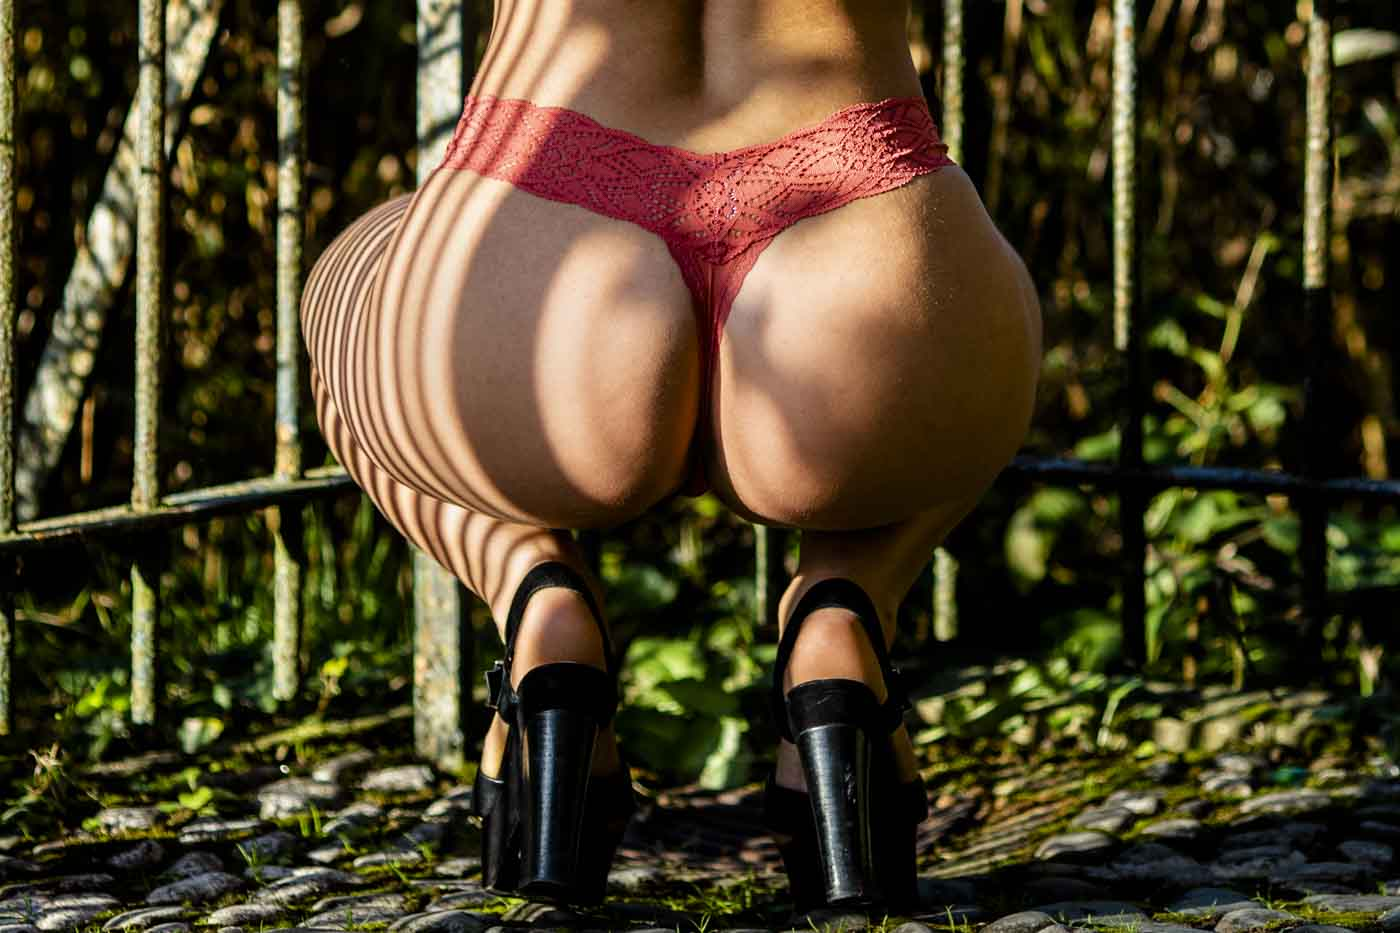 escort in lancaster, out call only, brunette